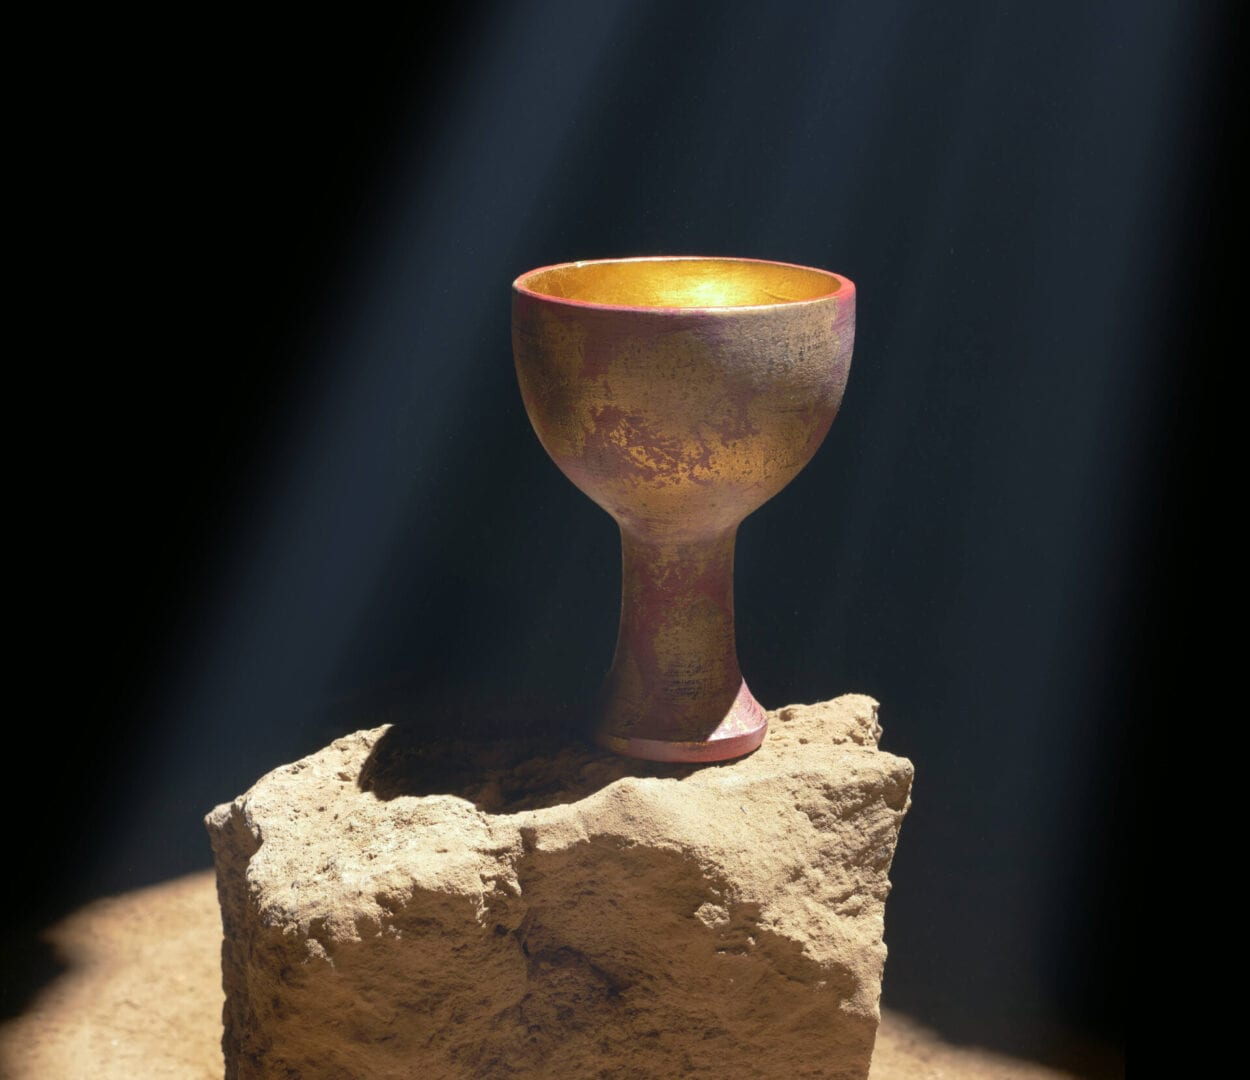 holy grail light up and perched on rock